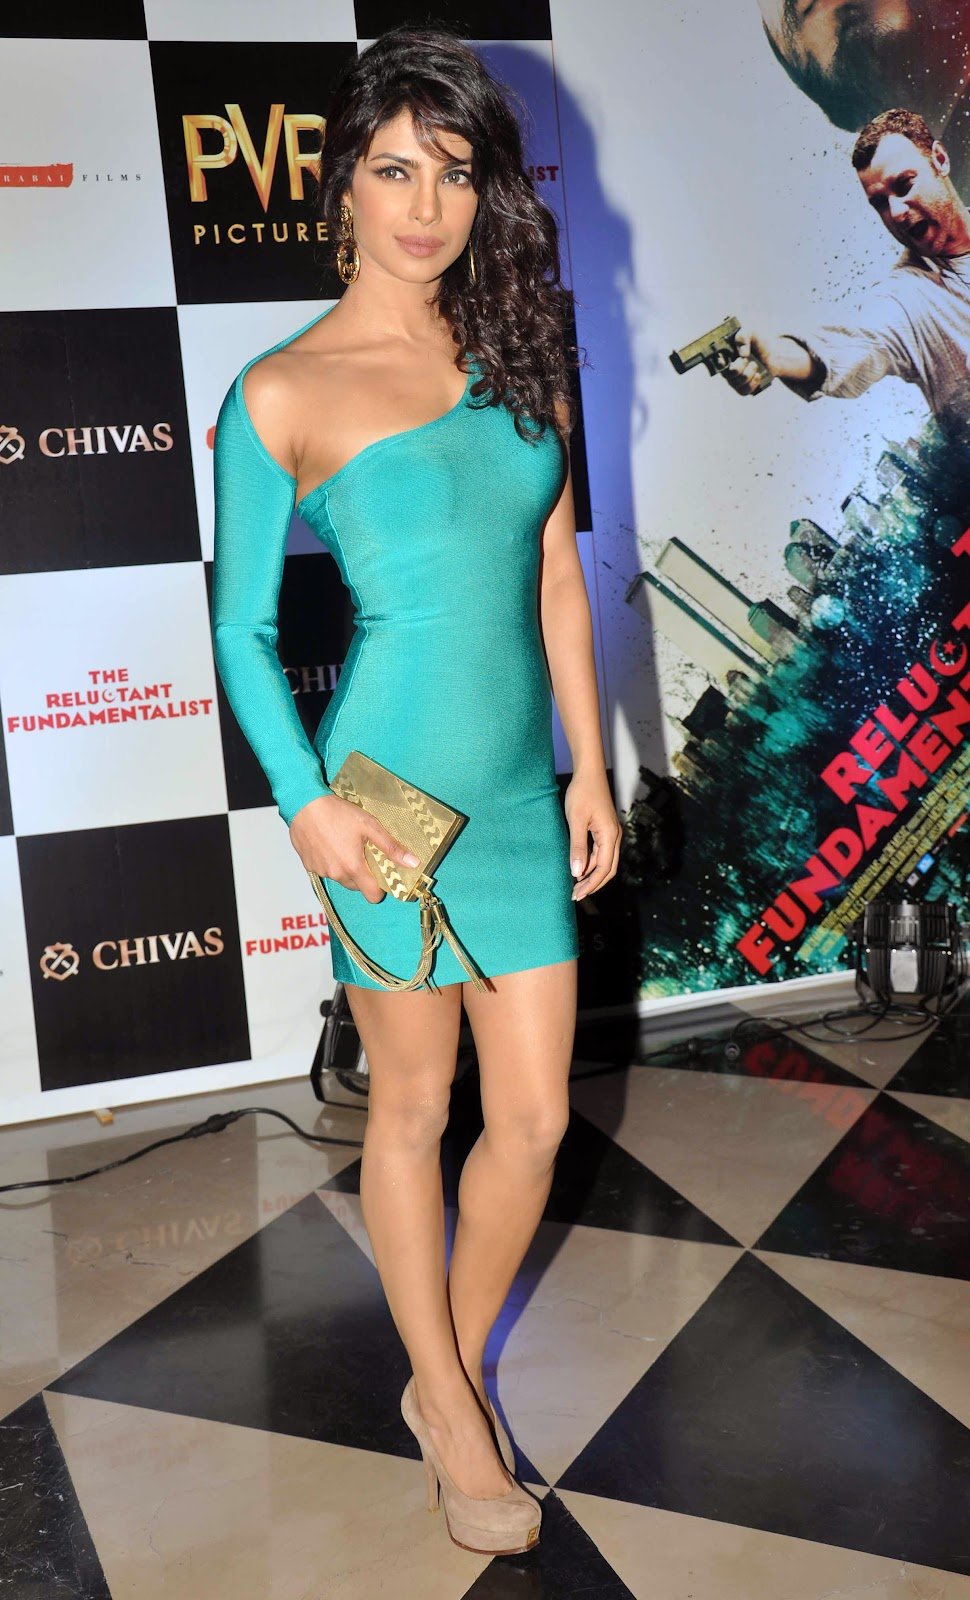 priyanka-chopra-in-tight-sky-blue-mini-dress-flaunting-her-curves